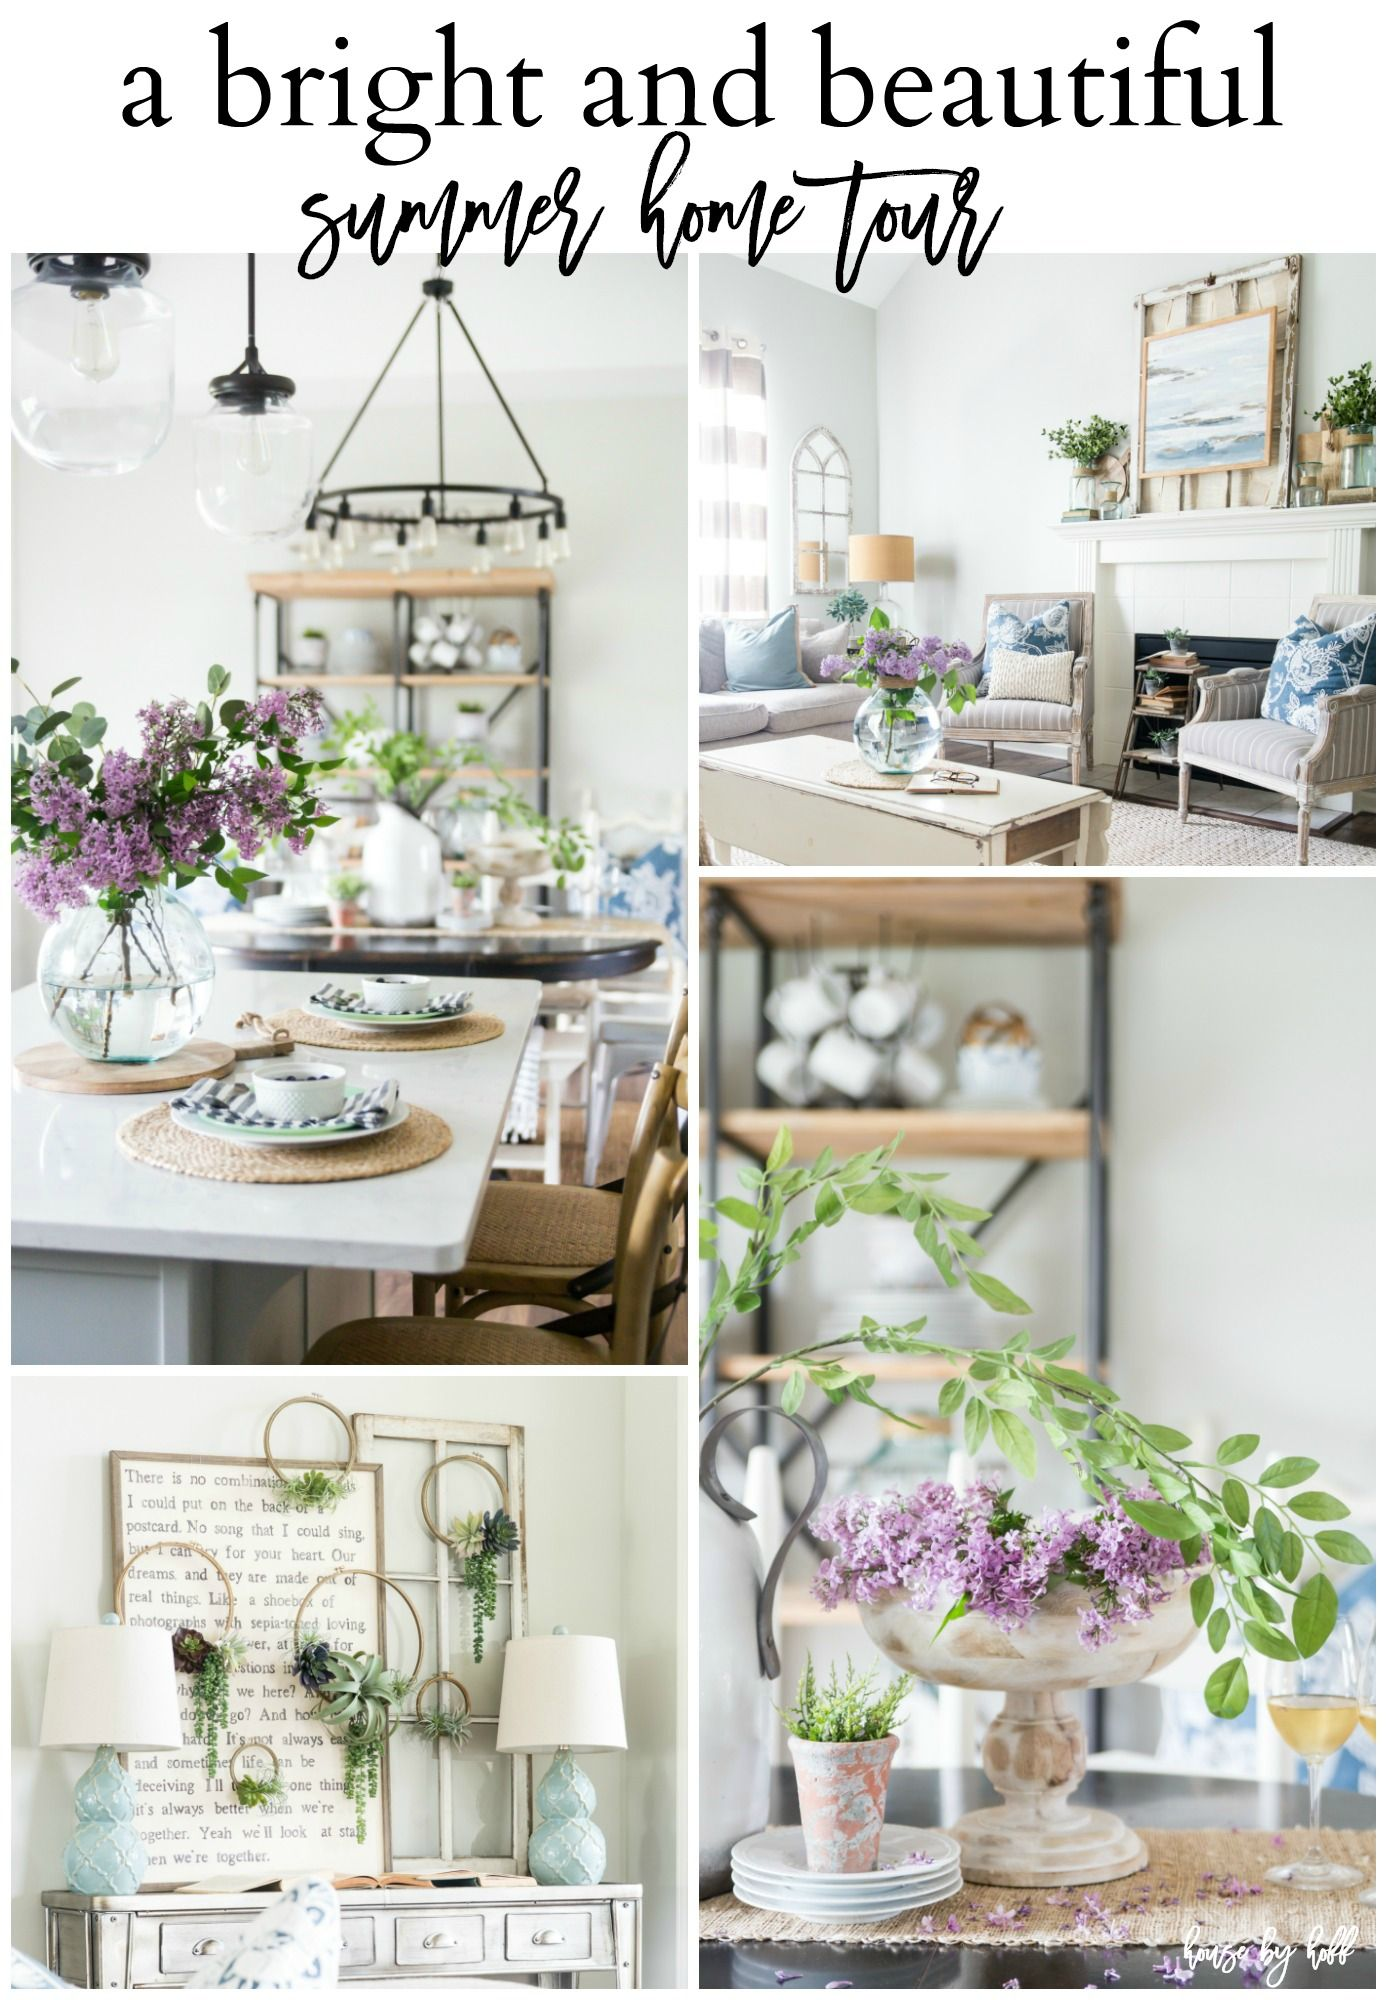 Having  decorating blog is so much fun but it   especially at the change of seasons  love adding decorative touches changing things here and also bright beautiful summer home tour furniture refinishing rh pinterest